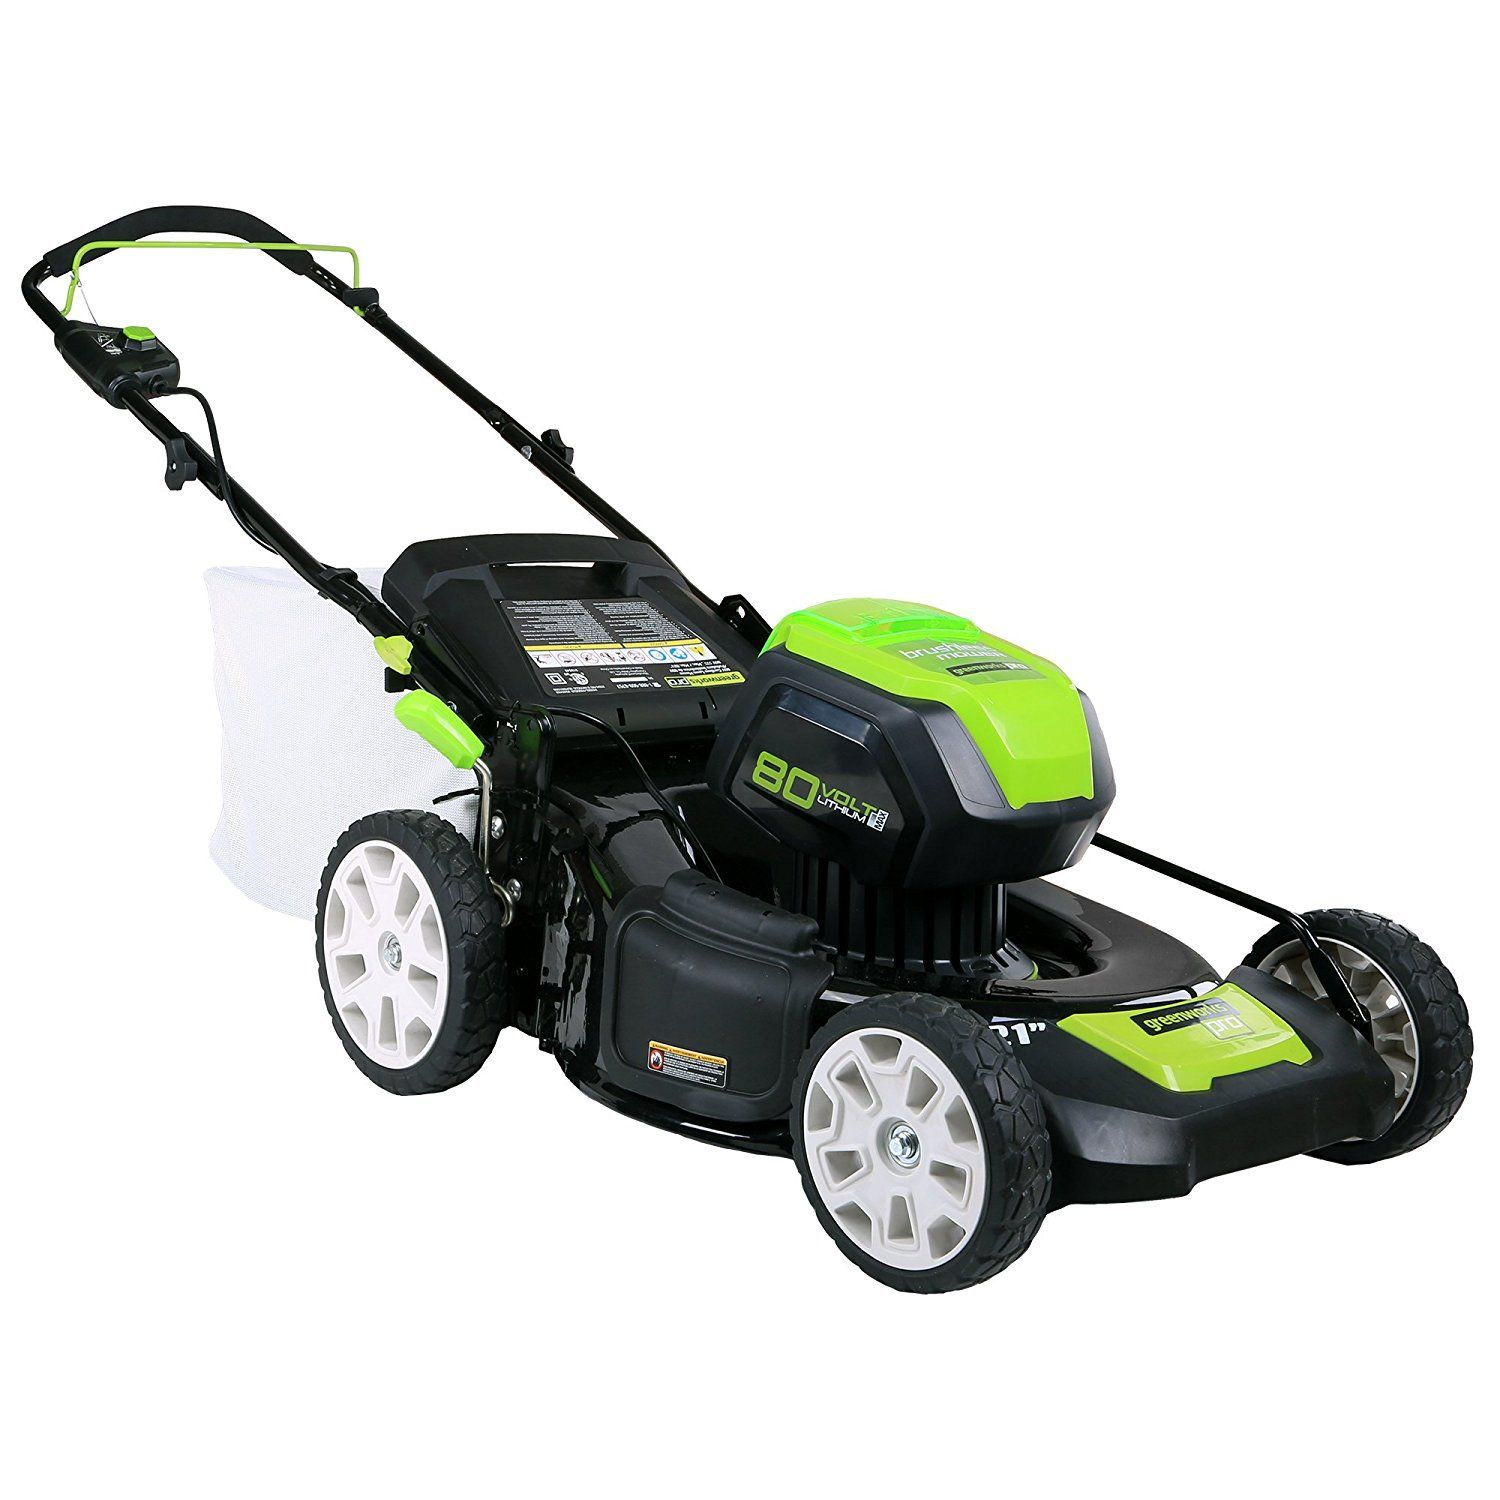 14 Best Electric Lawn Mowers In 2018 The Ultimate Buyer S Guide Best Lawn Mower Cordless Lawn Mower Lawn Mower